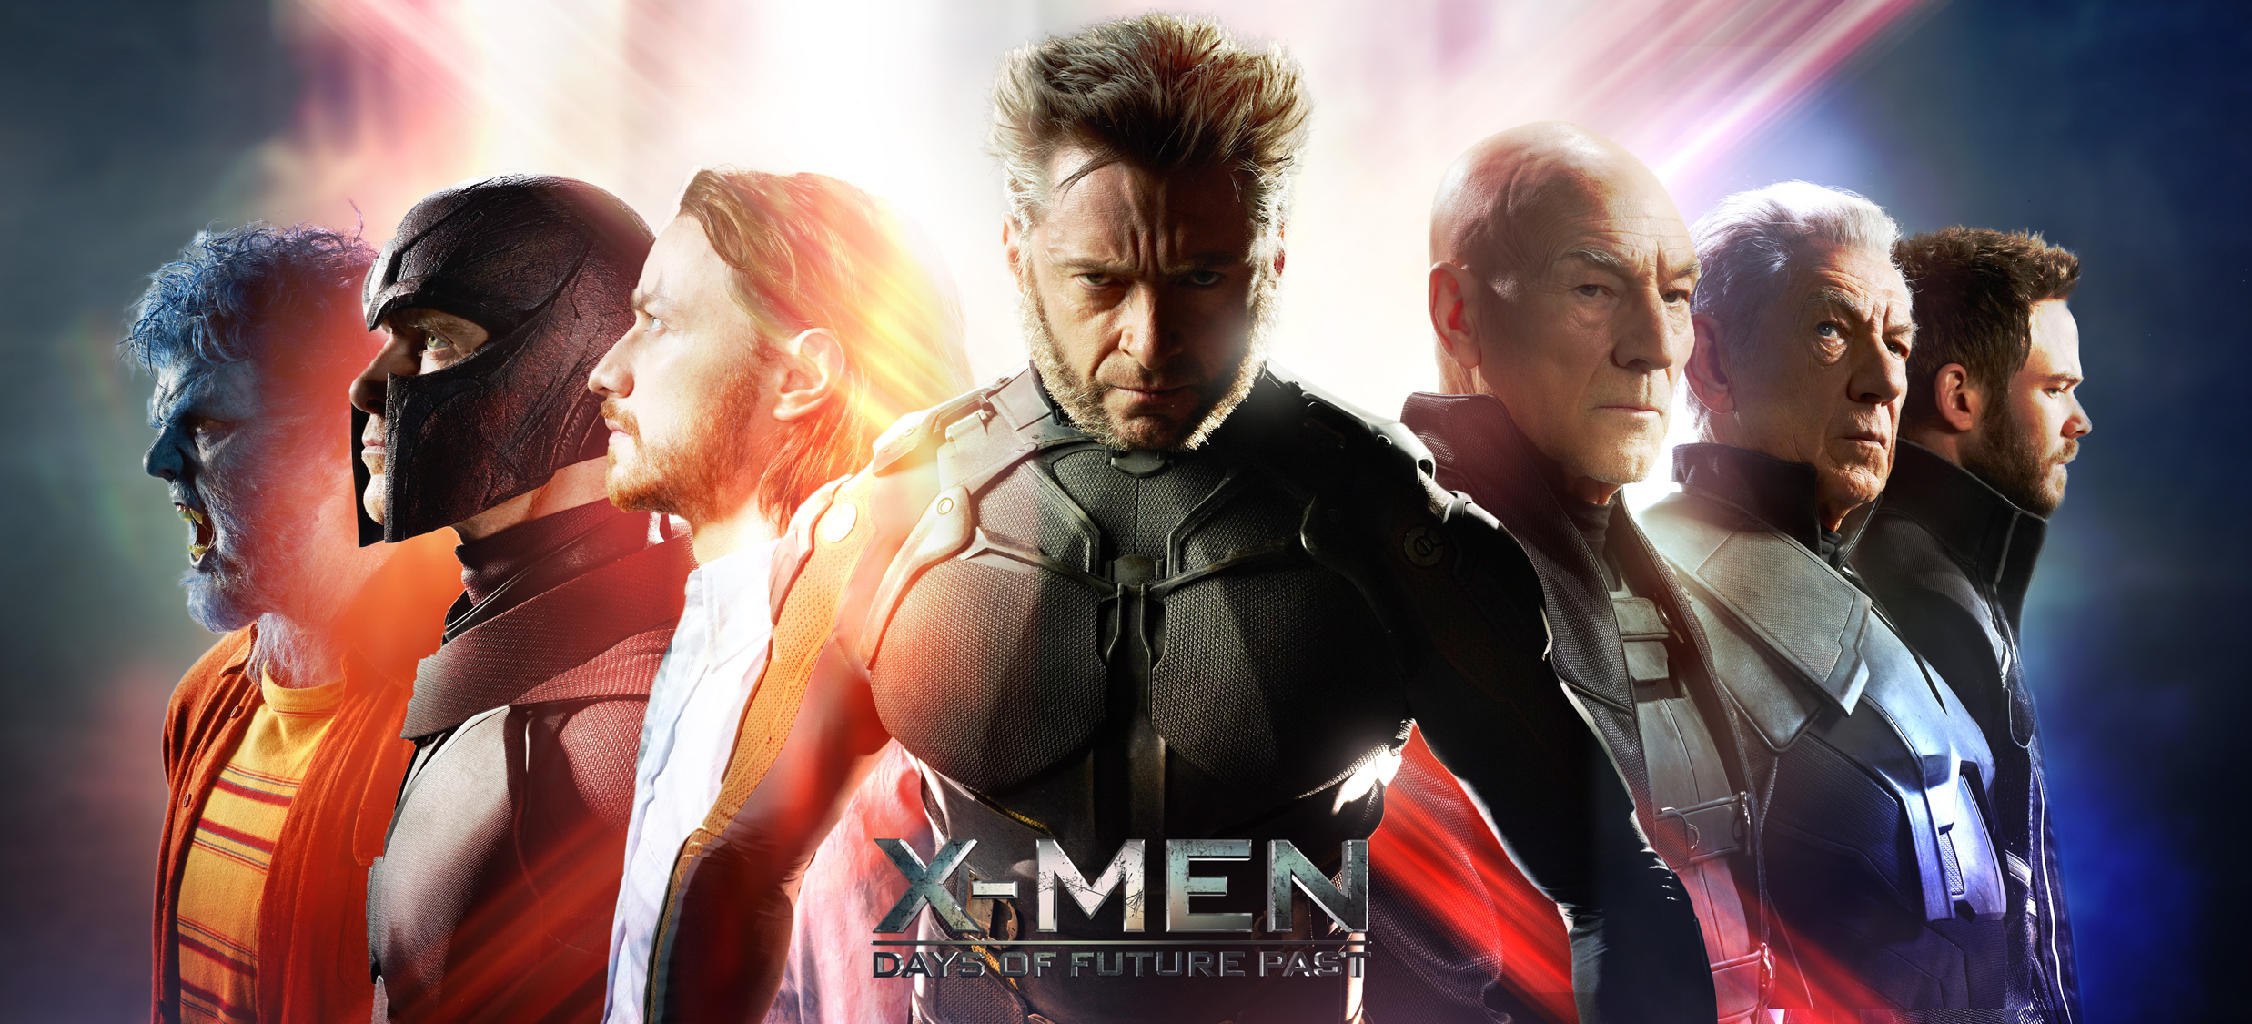 X-Men Days of Future Past-Official Poster Banner PROMO XLG-04ABRIL2014-09